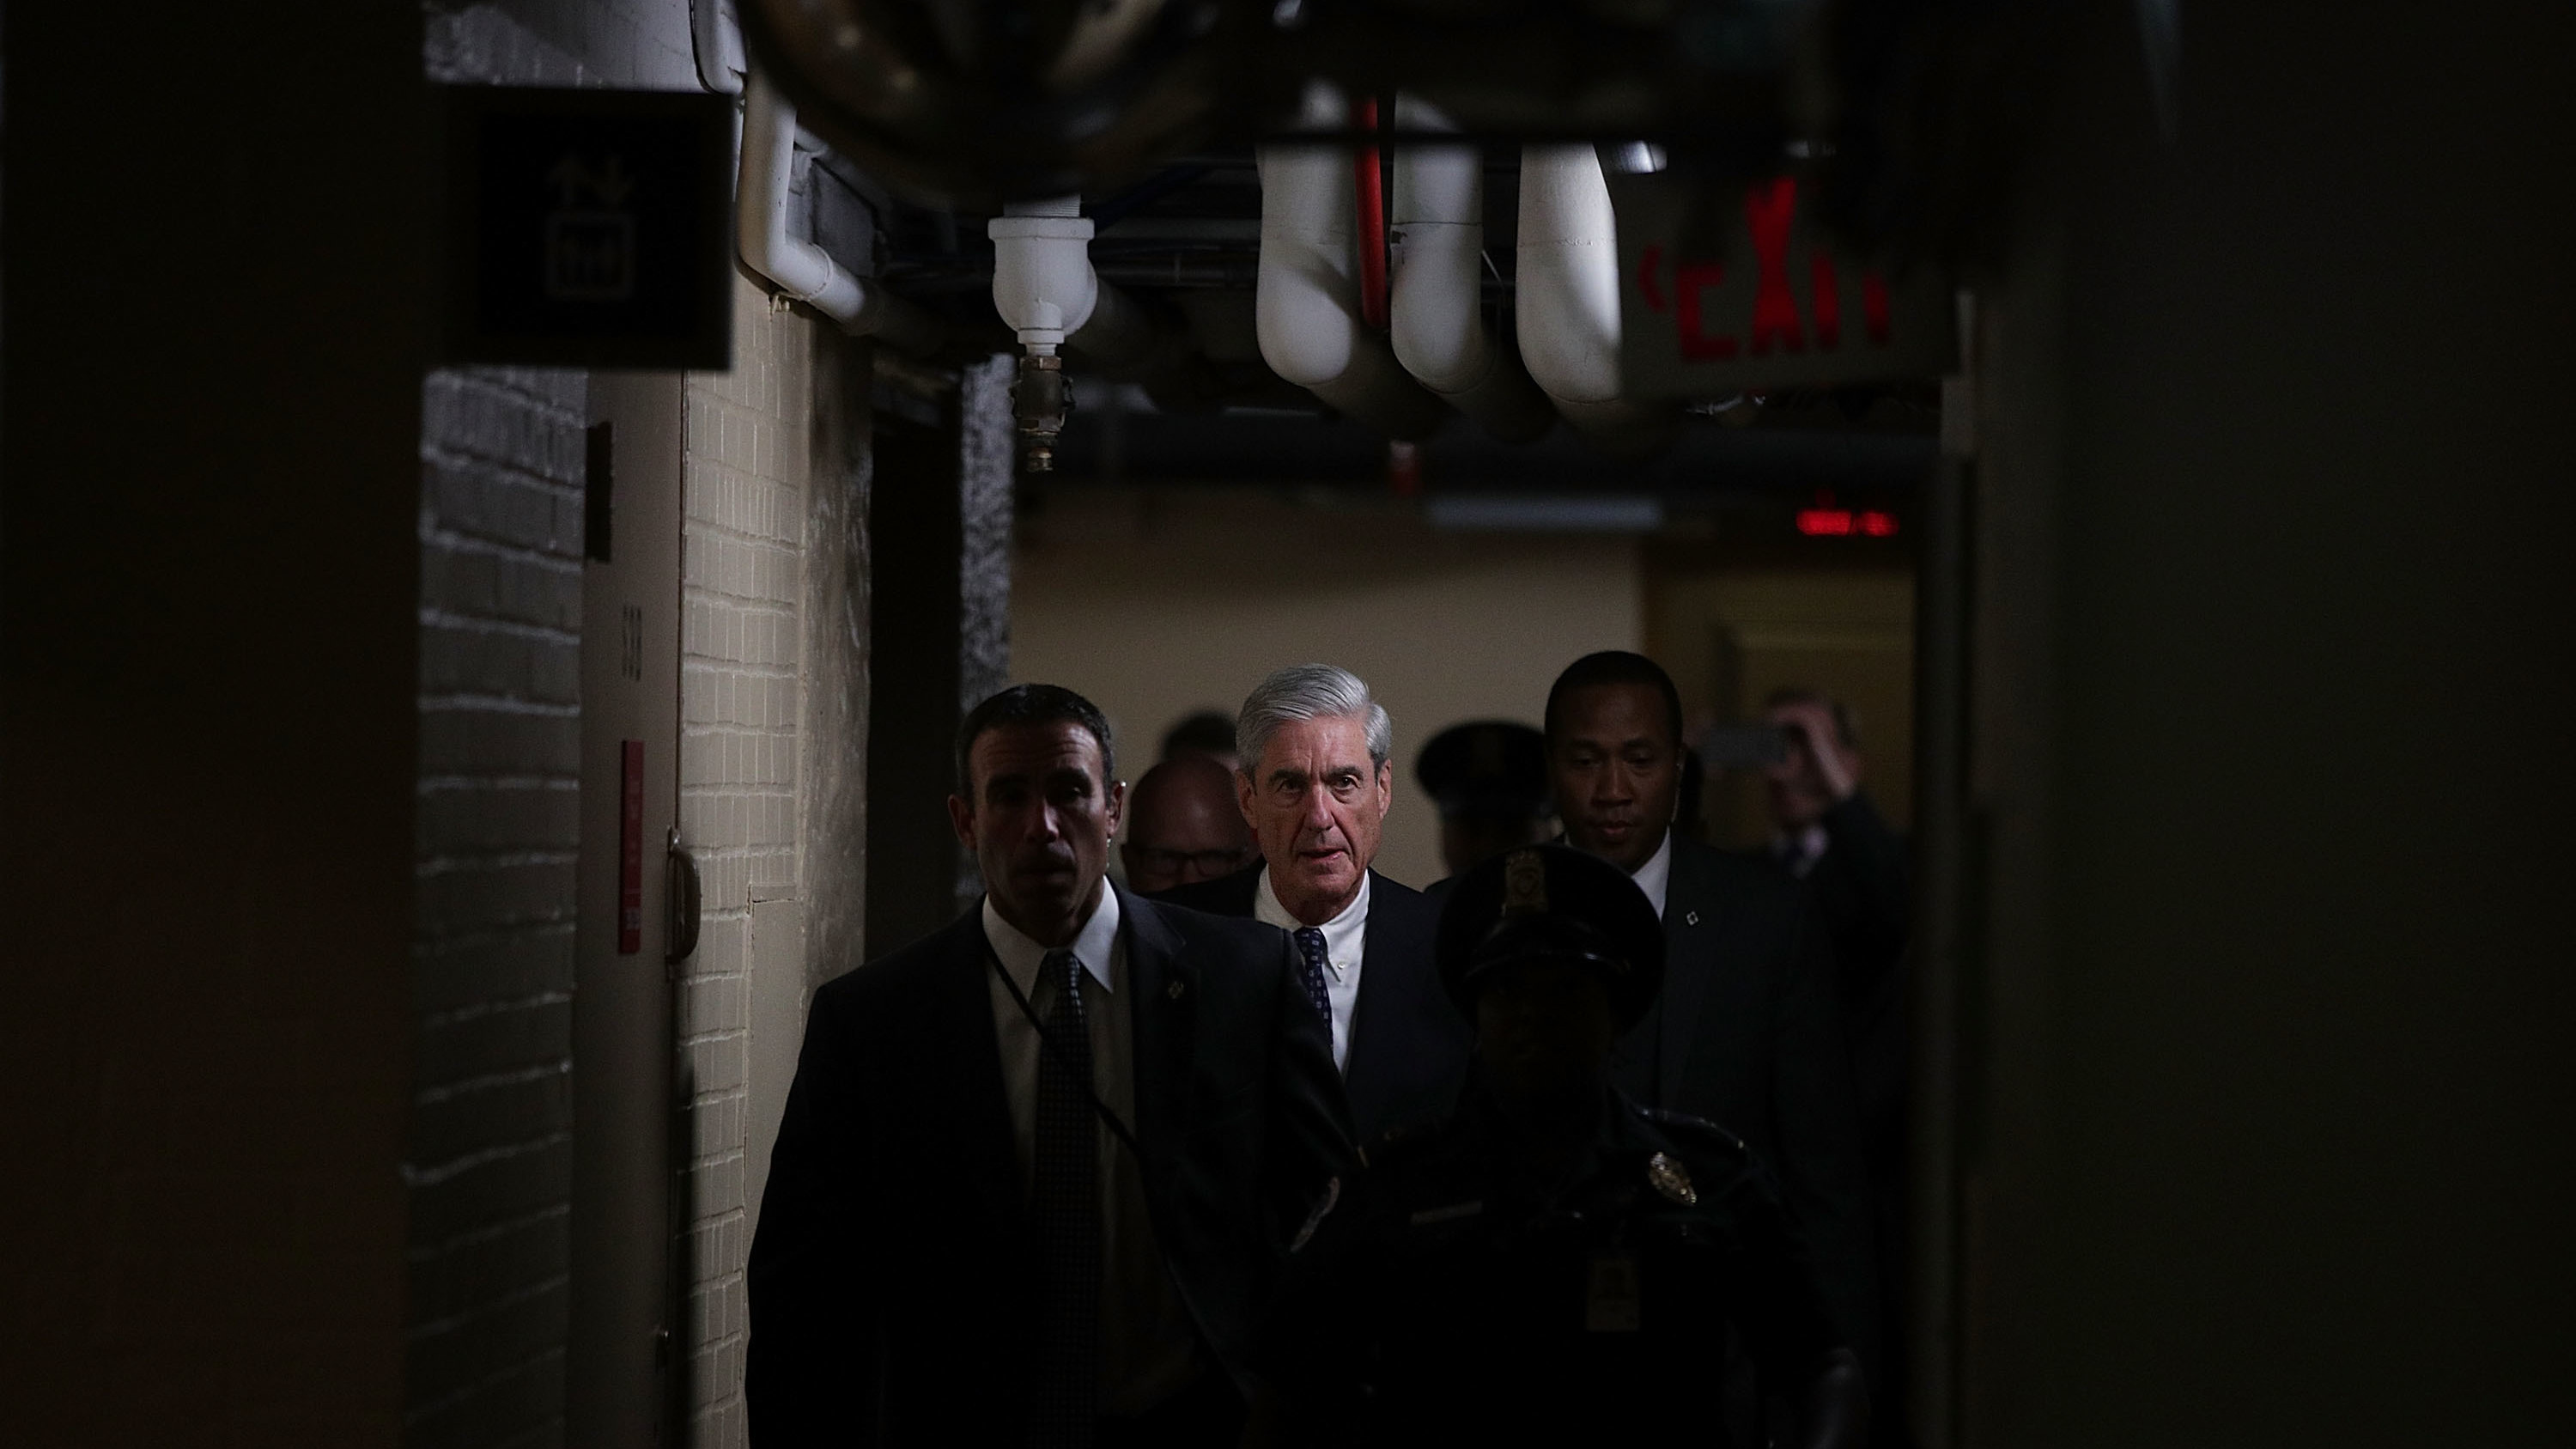 Special counsel Robert Mueller leaves after a closed meeting with members of the Senate Judiciary Committee last June at the Capitol in Washington, D.C.